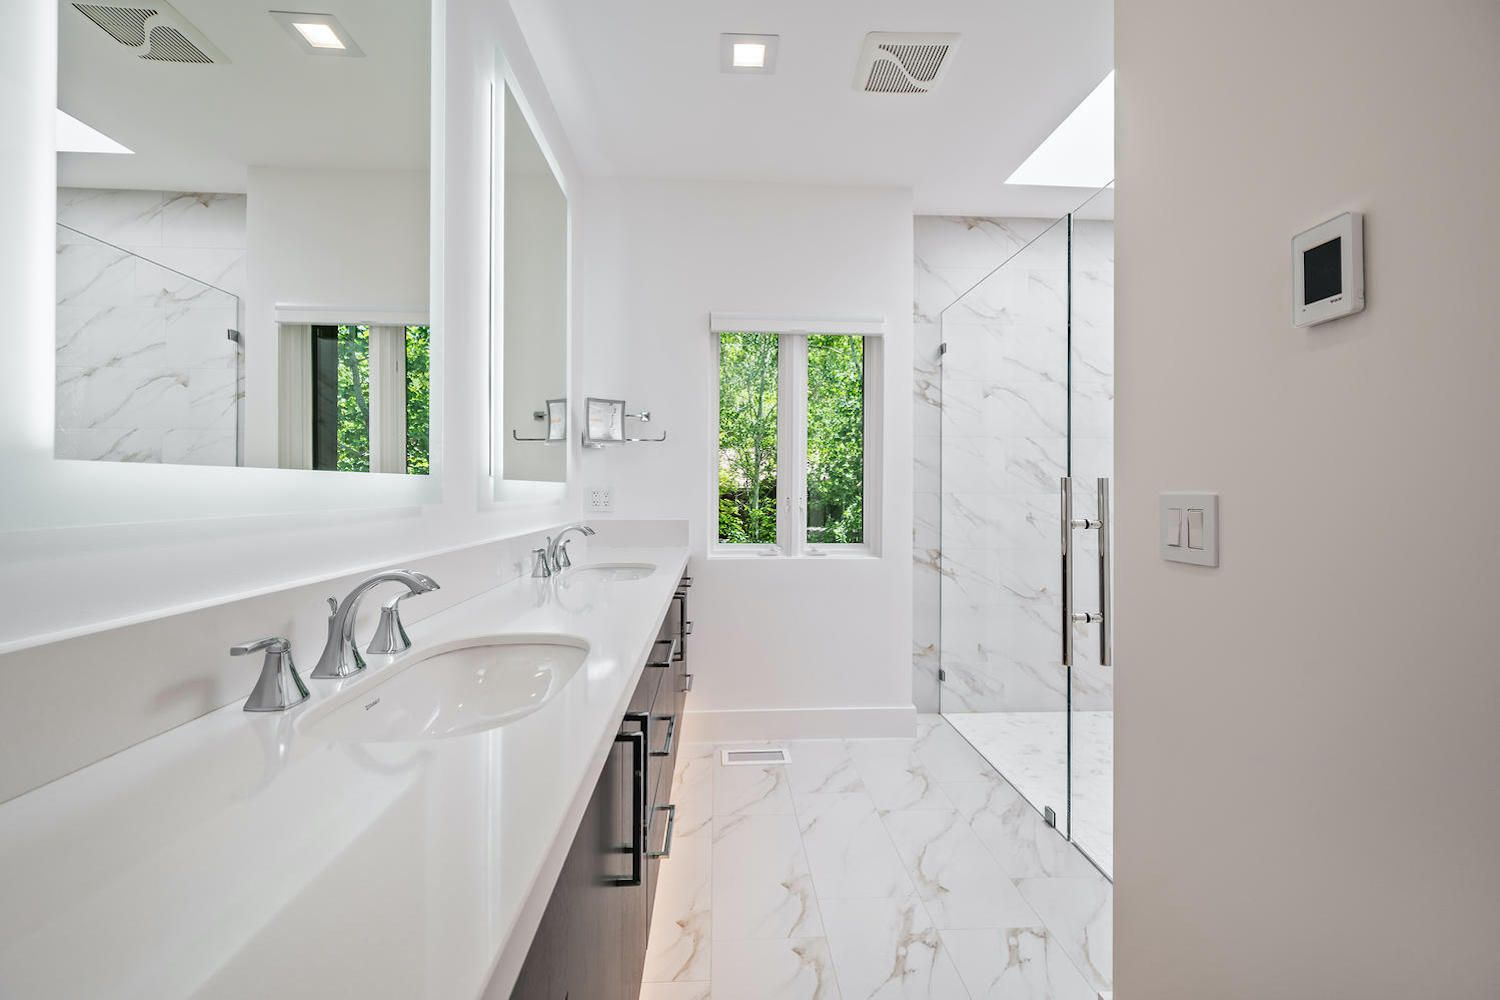 Mid-Century Modern primary bathroom in Reno, NV after remodel